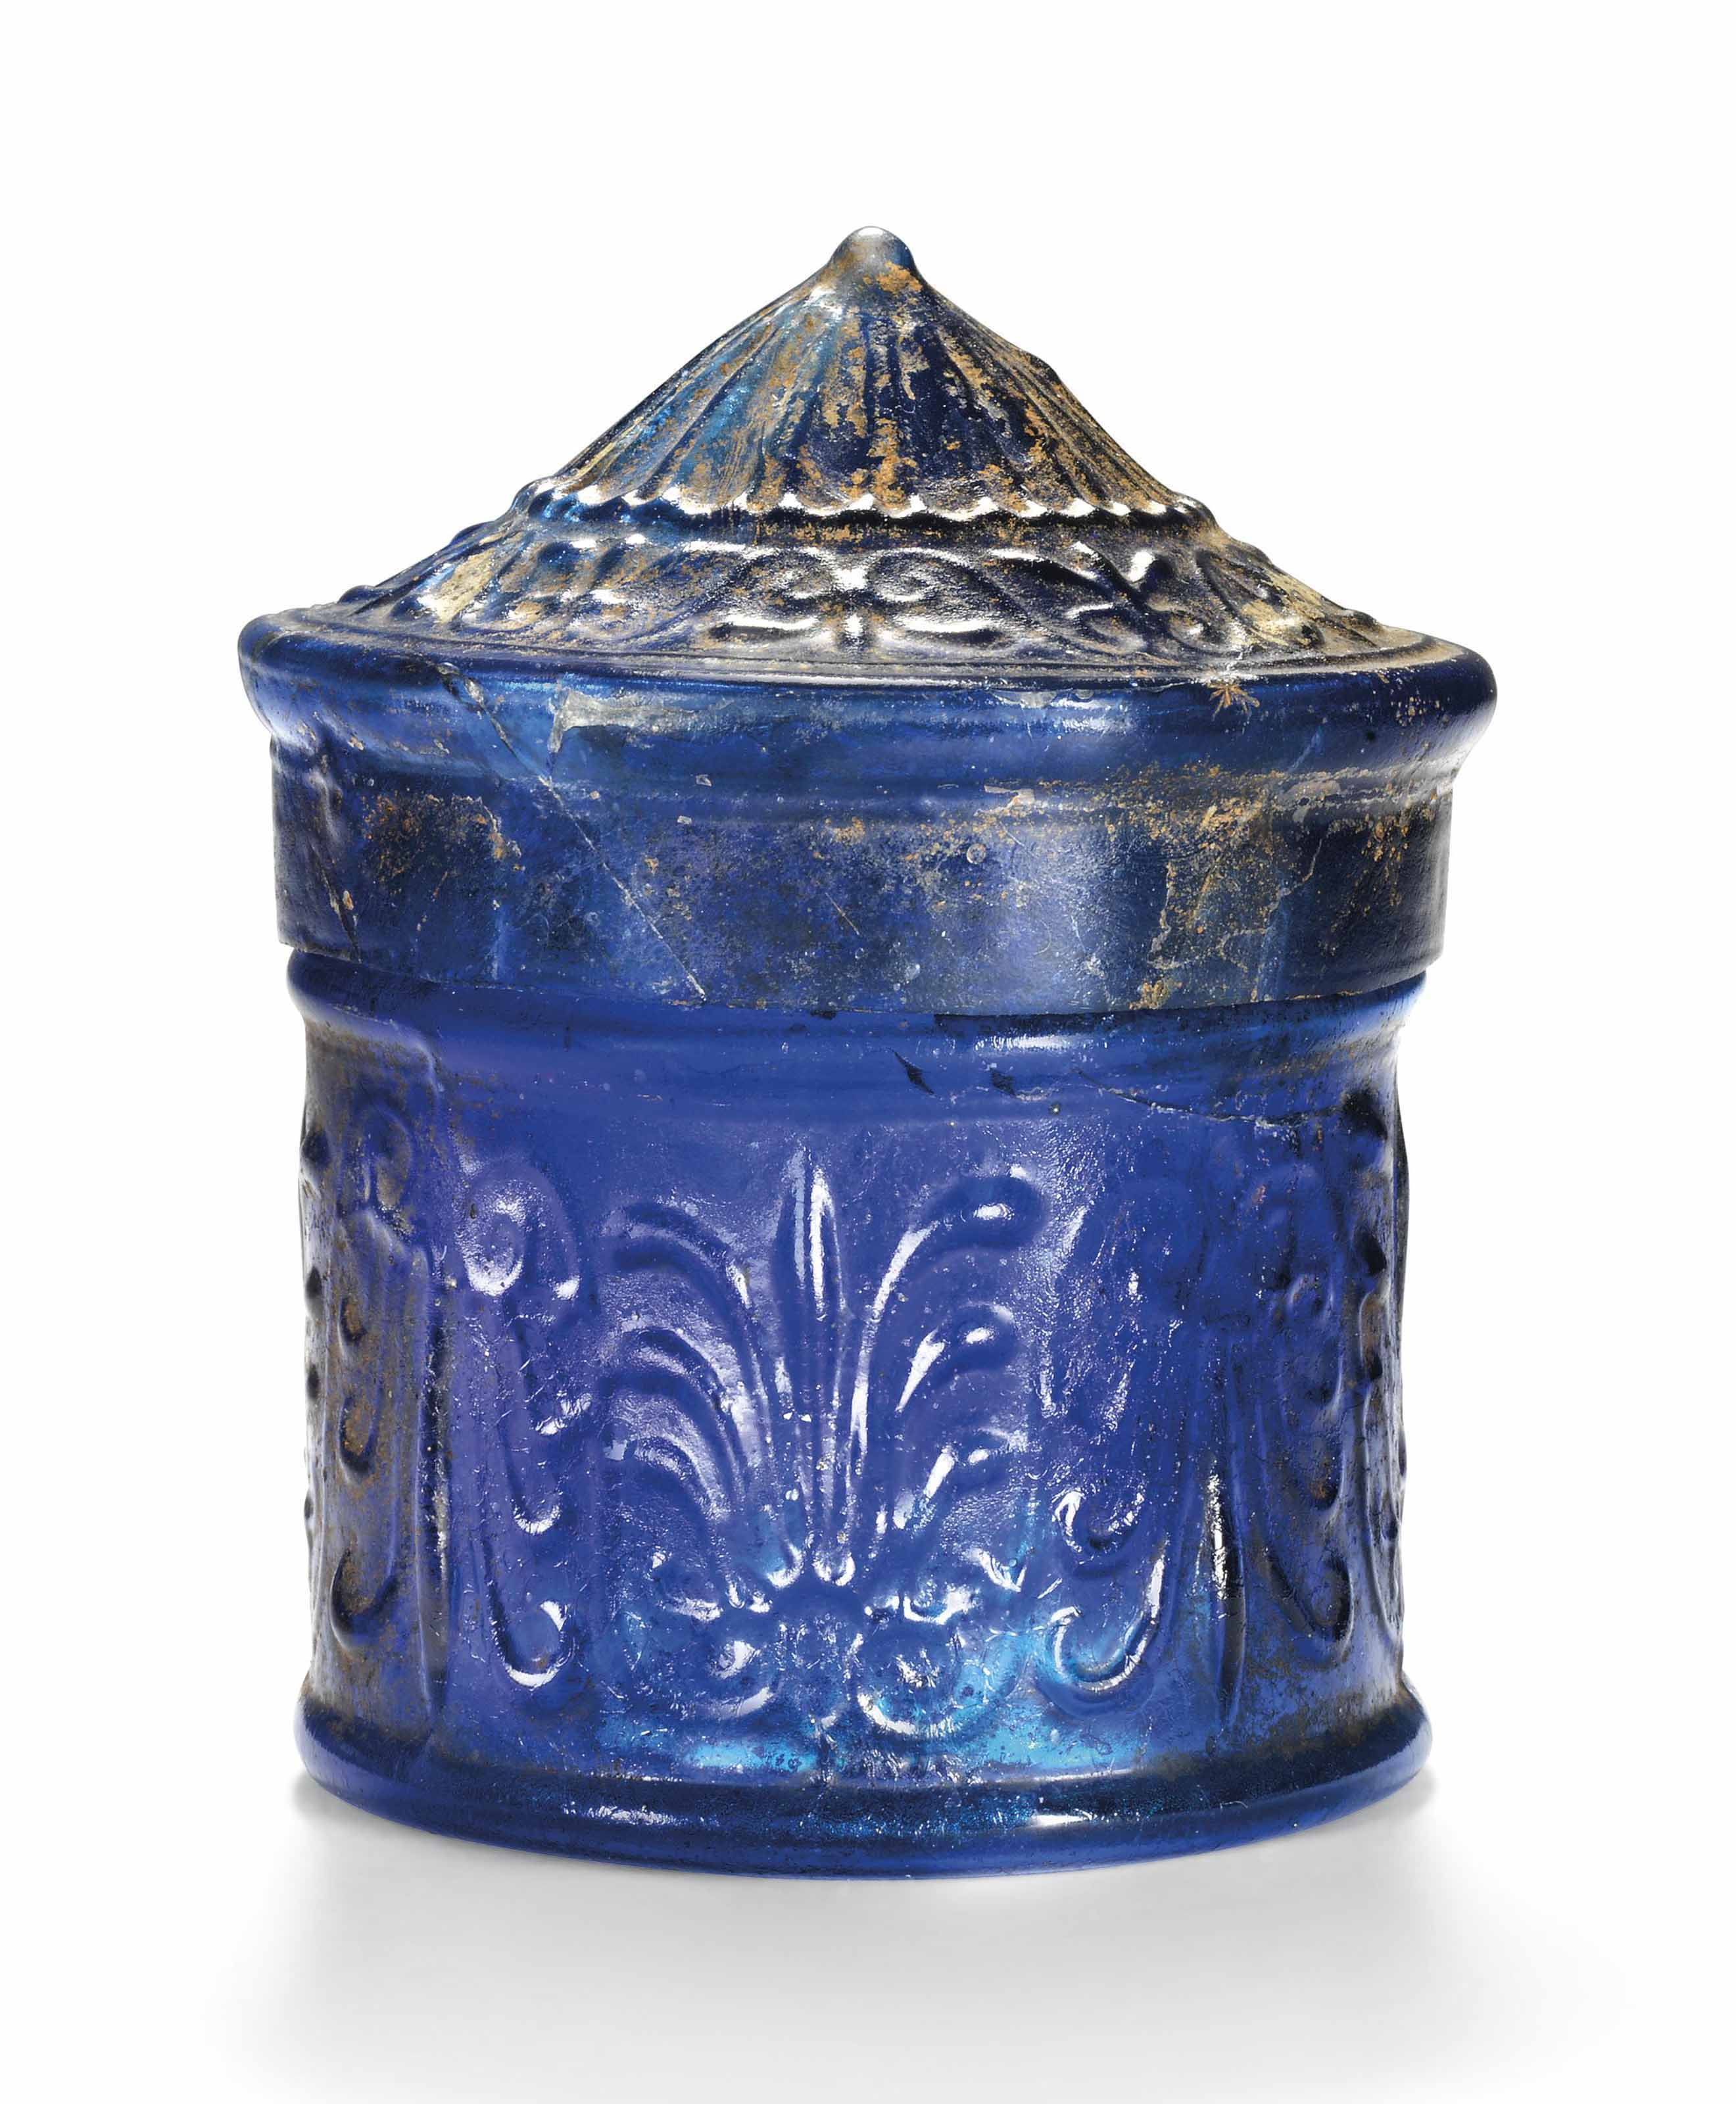 A ROMAN COBALT BLUE GLASS PYXIS WITH CONICAL LID